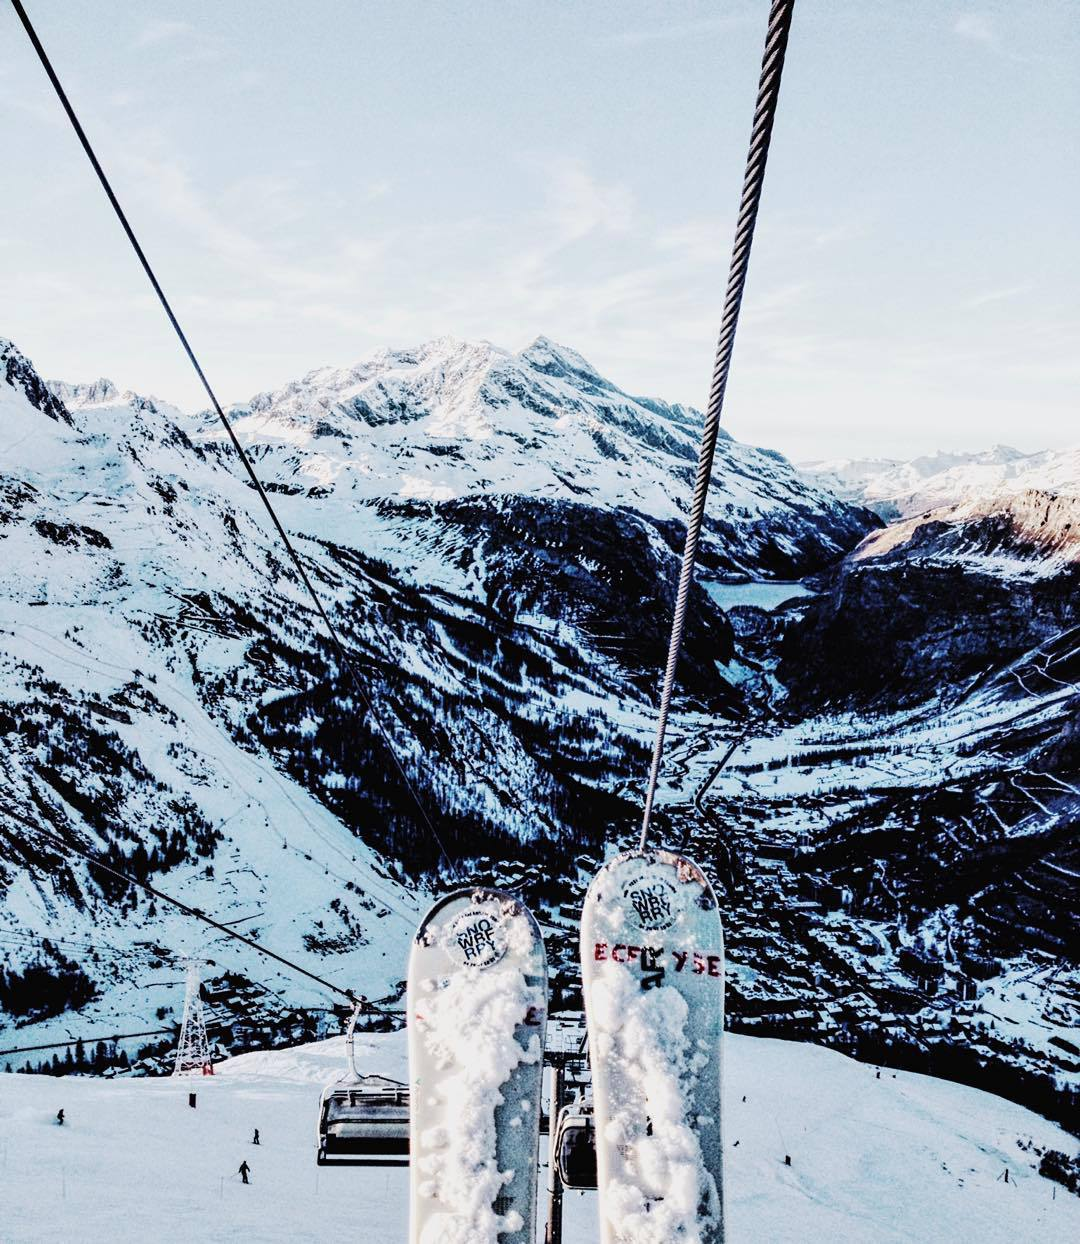 alps, january, mountain, snow, snowboard, white